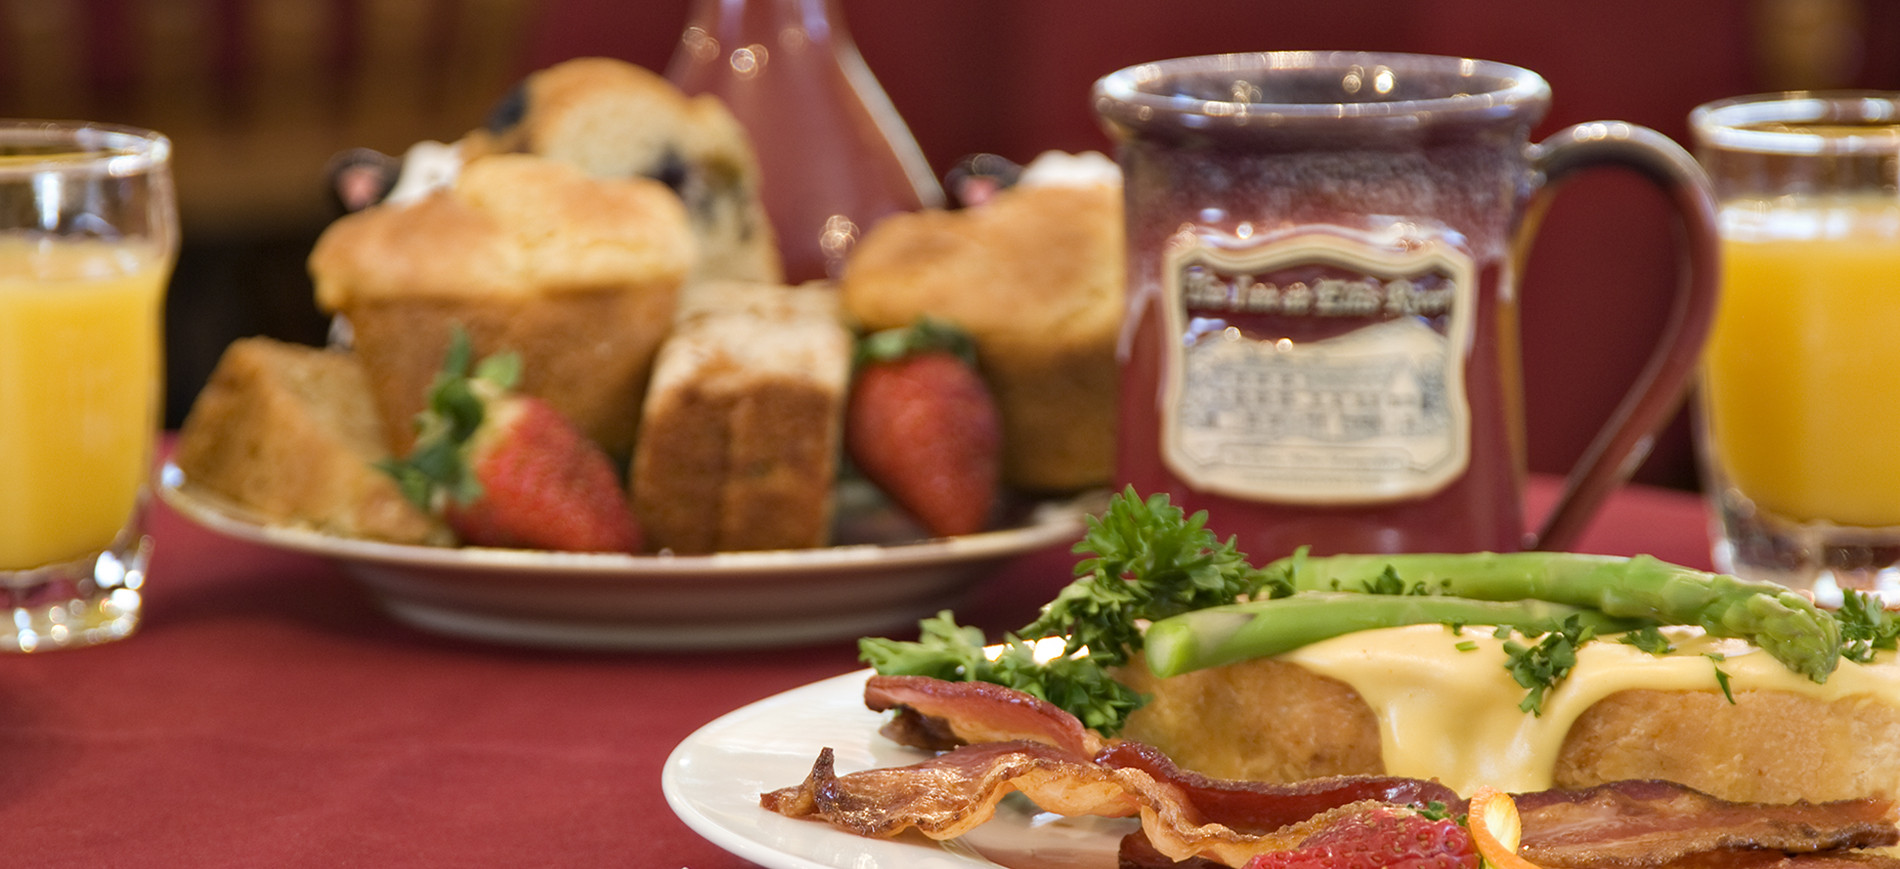 plate with muffins & strawberries & red coffee mug behind plate of bacon & eggs with asparagus